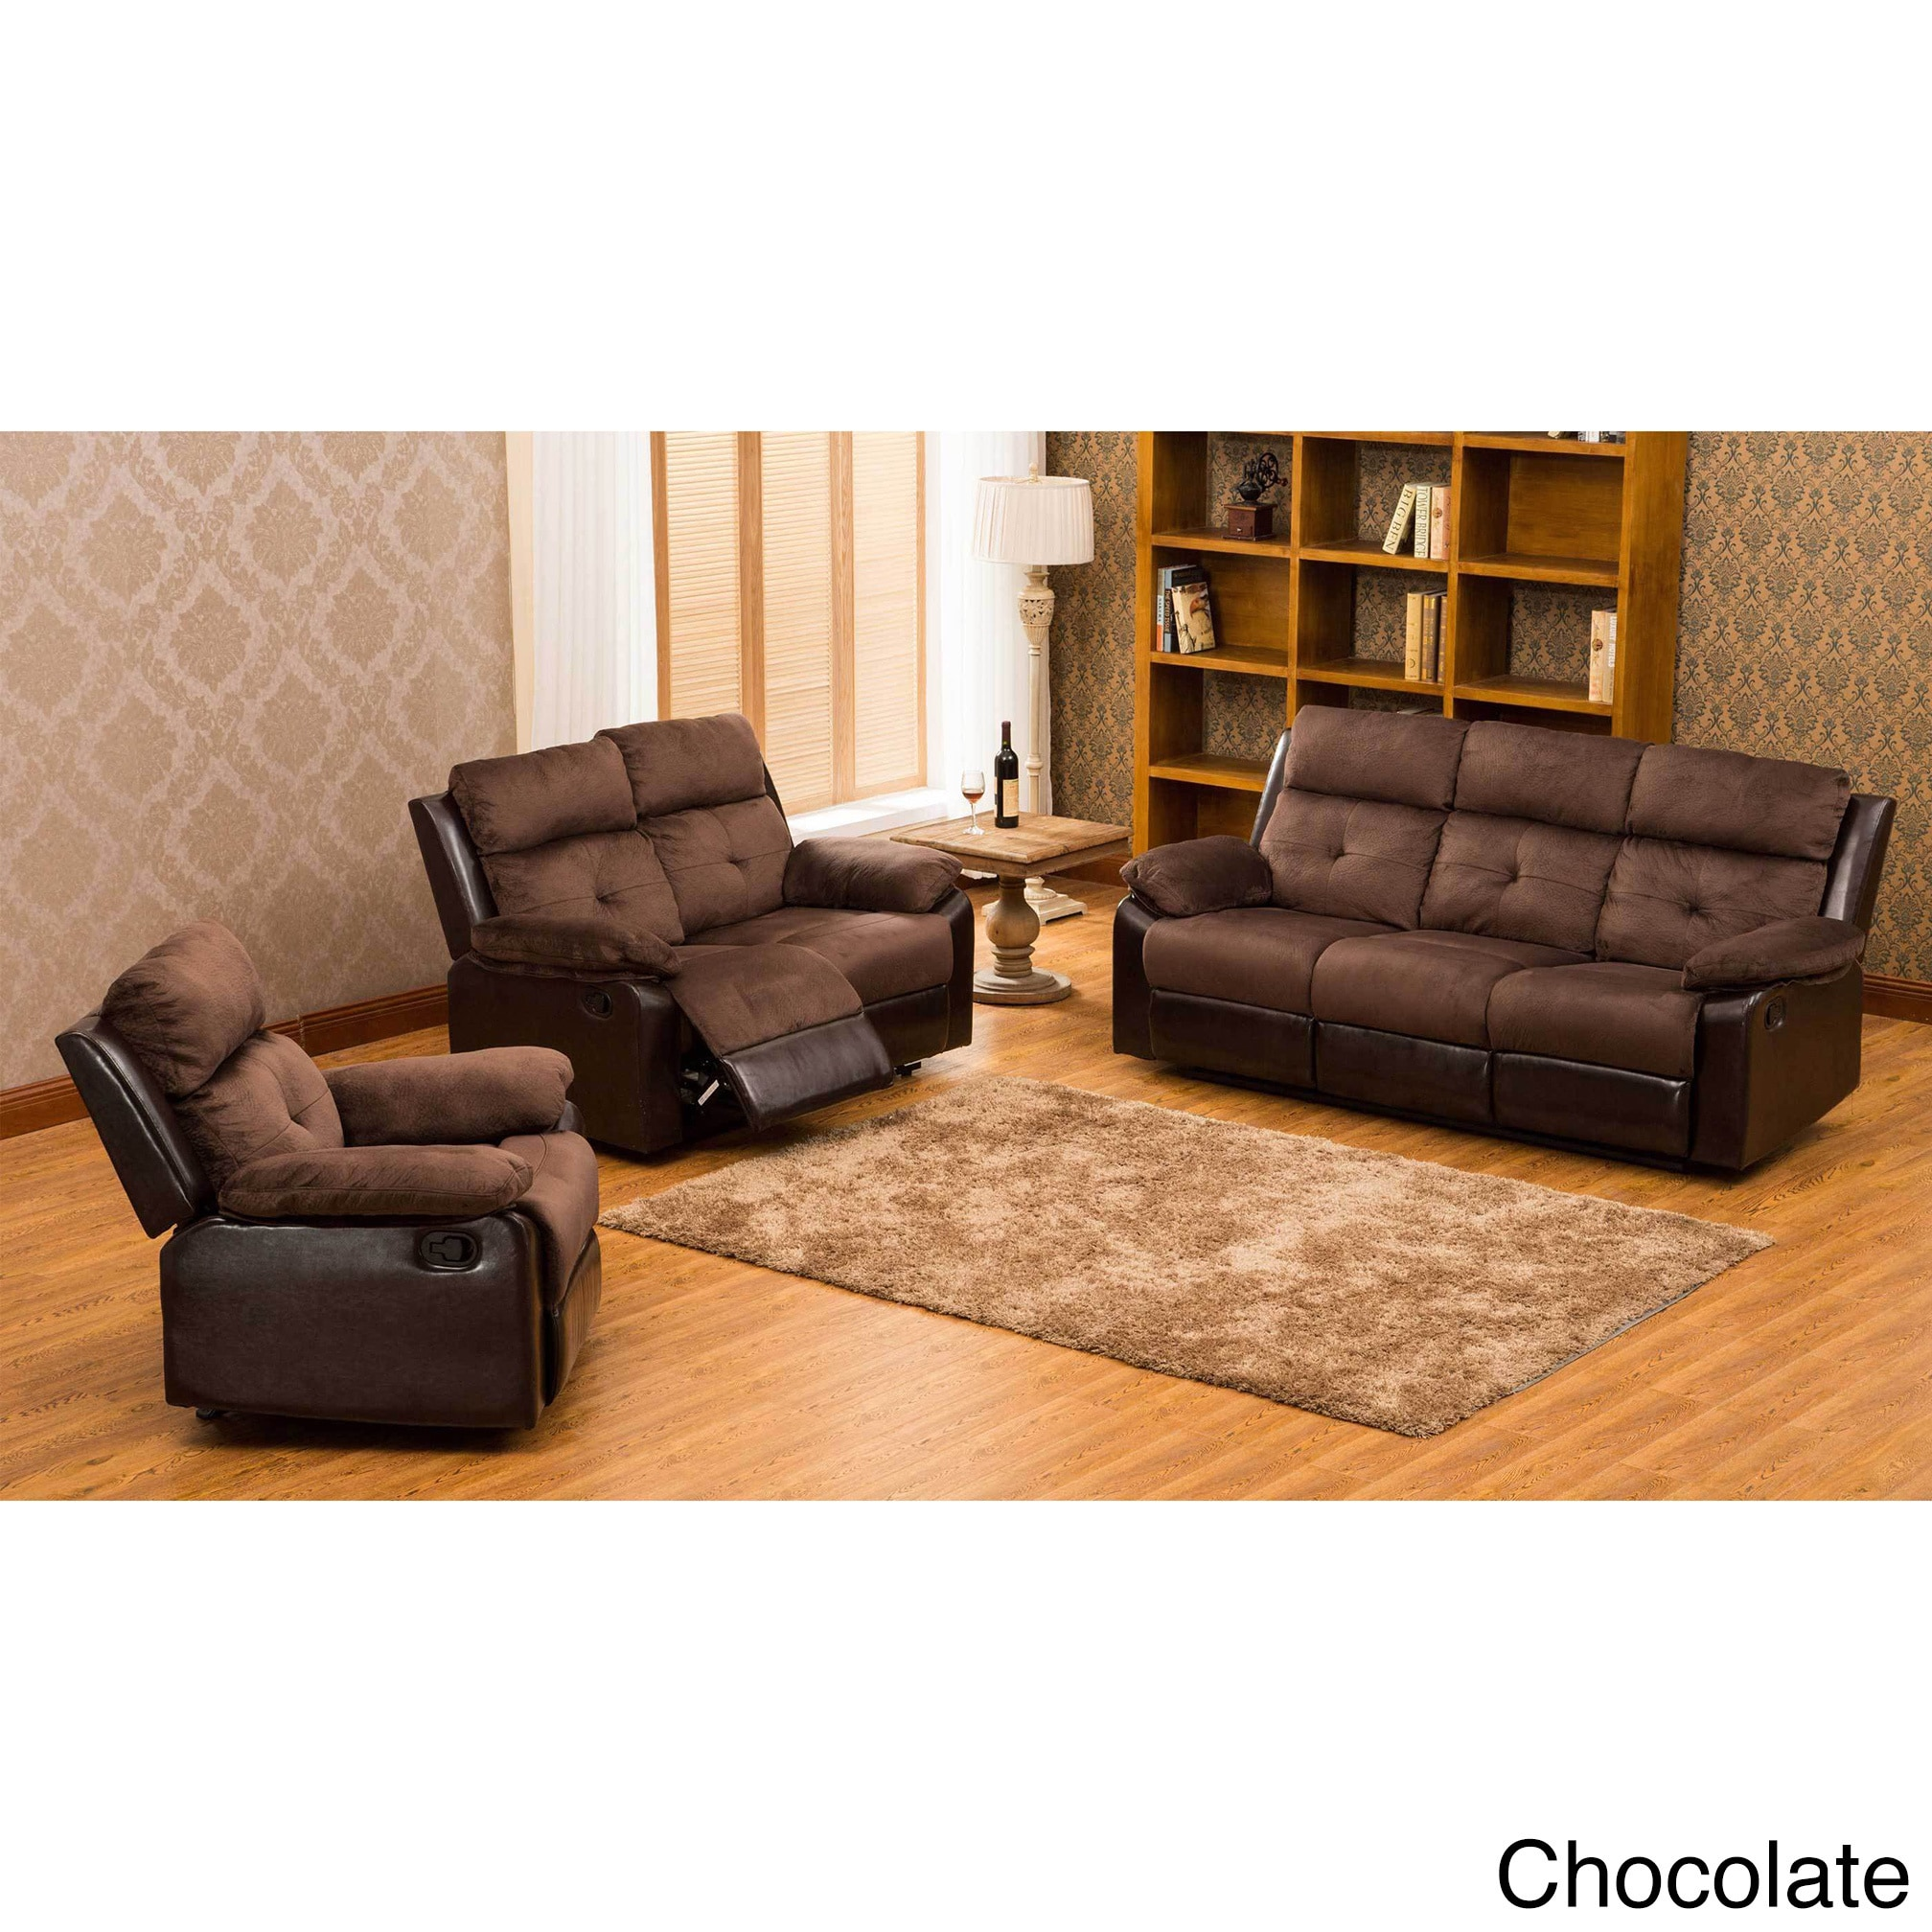 United Furniture Express Stanford 3-pc Motion Recliner Living Room Set